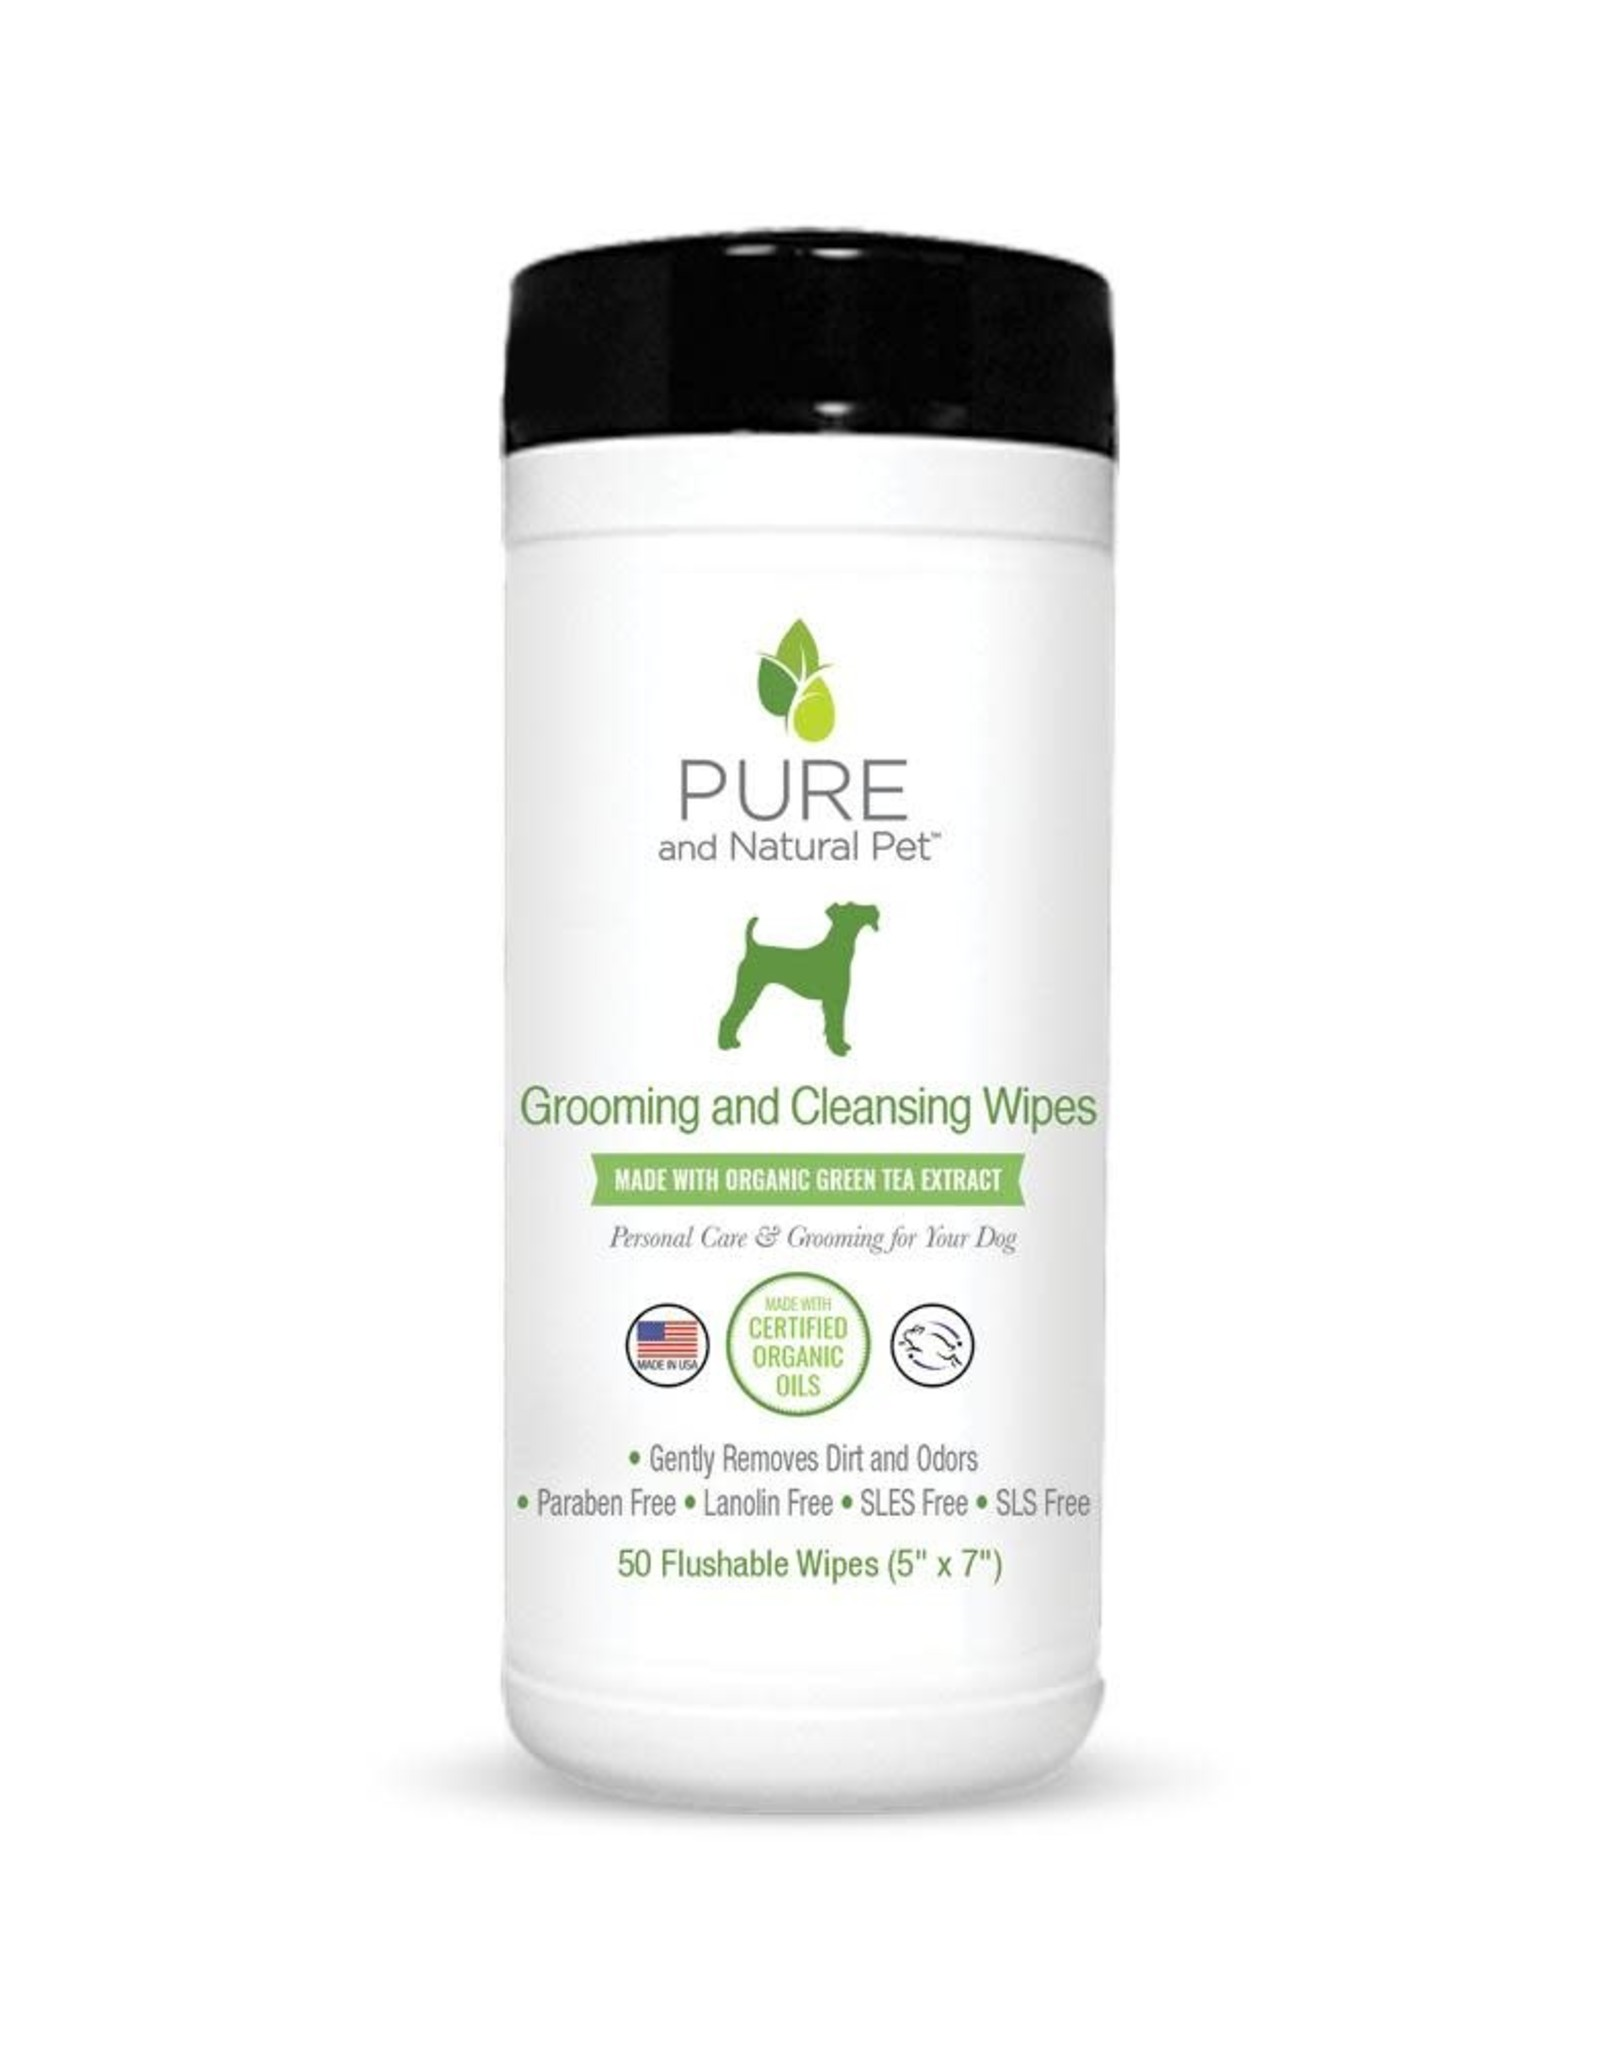 Pure and Natural Pet Grooming and Cleansing Wipes